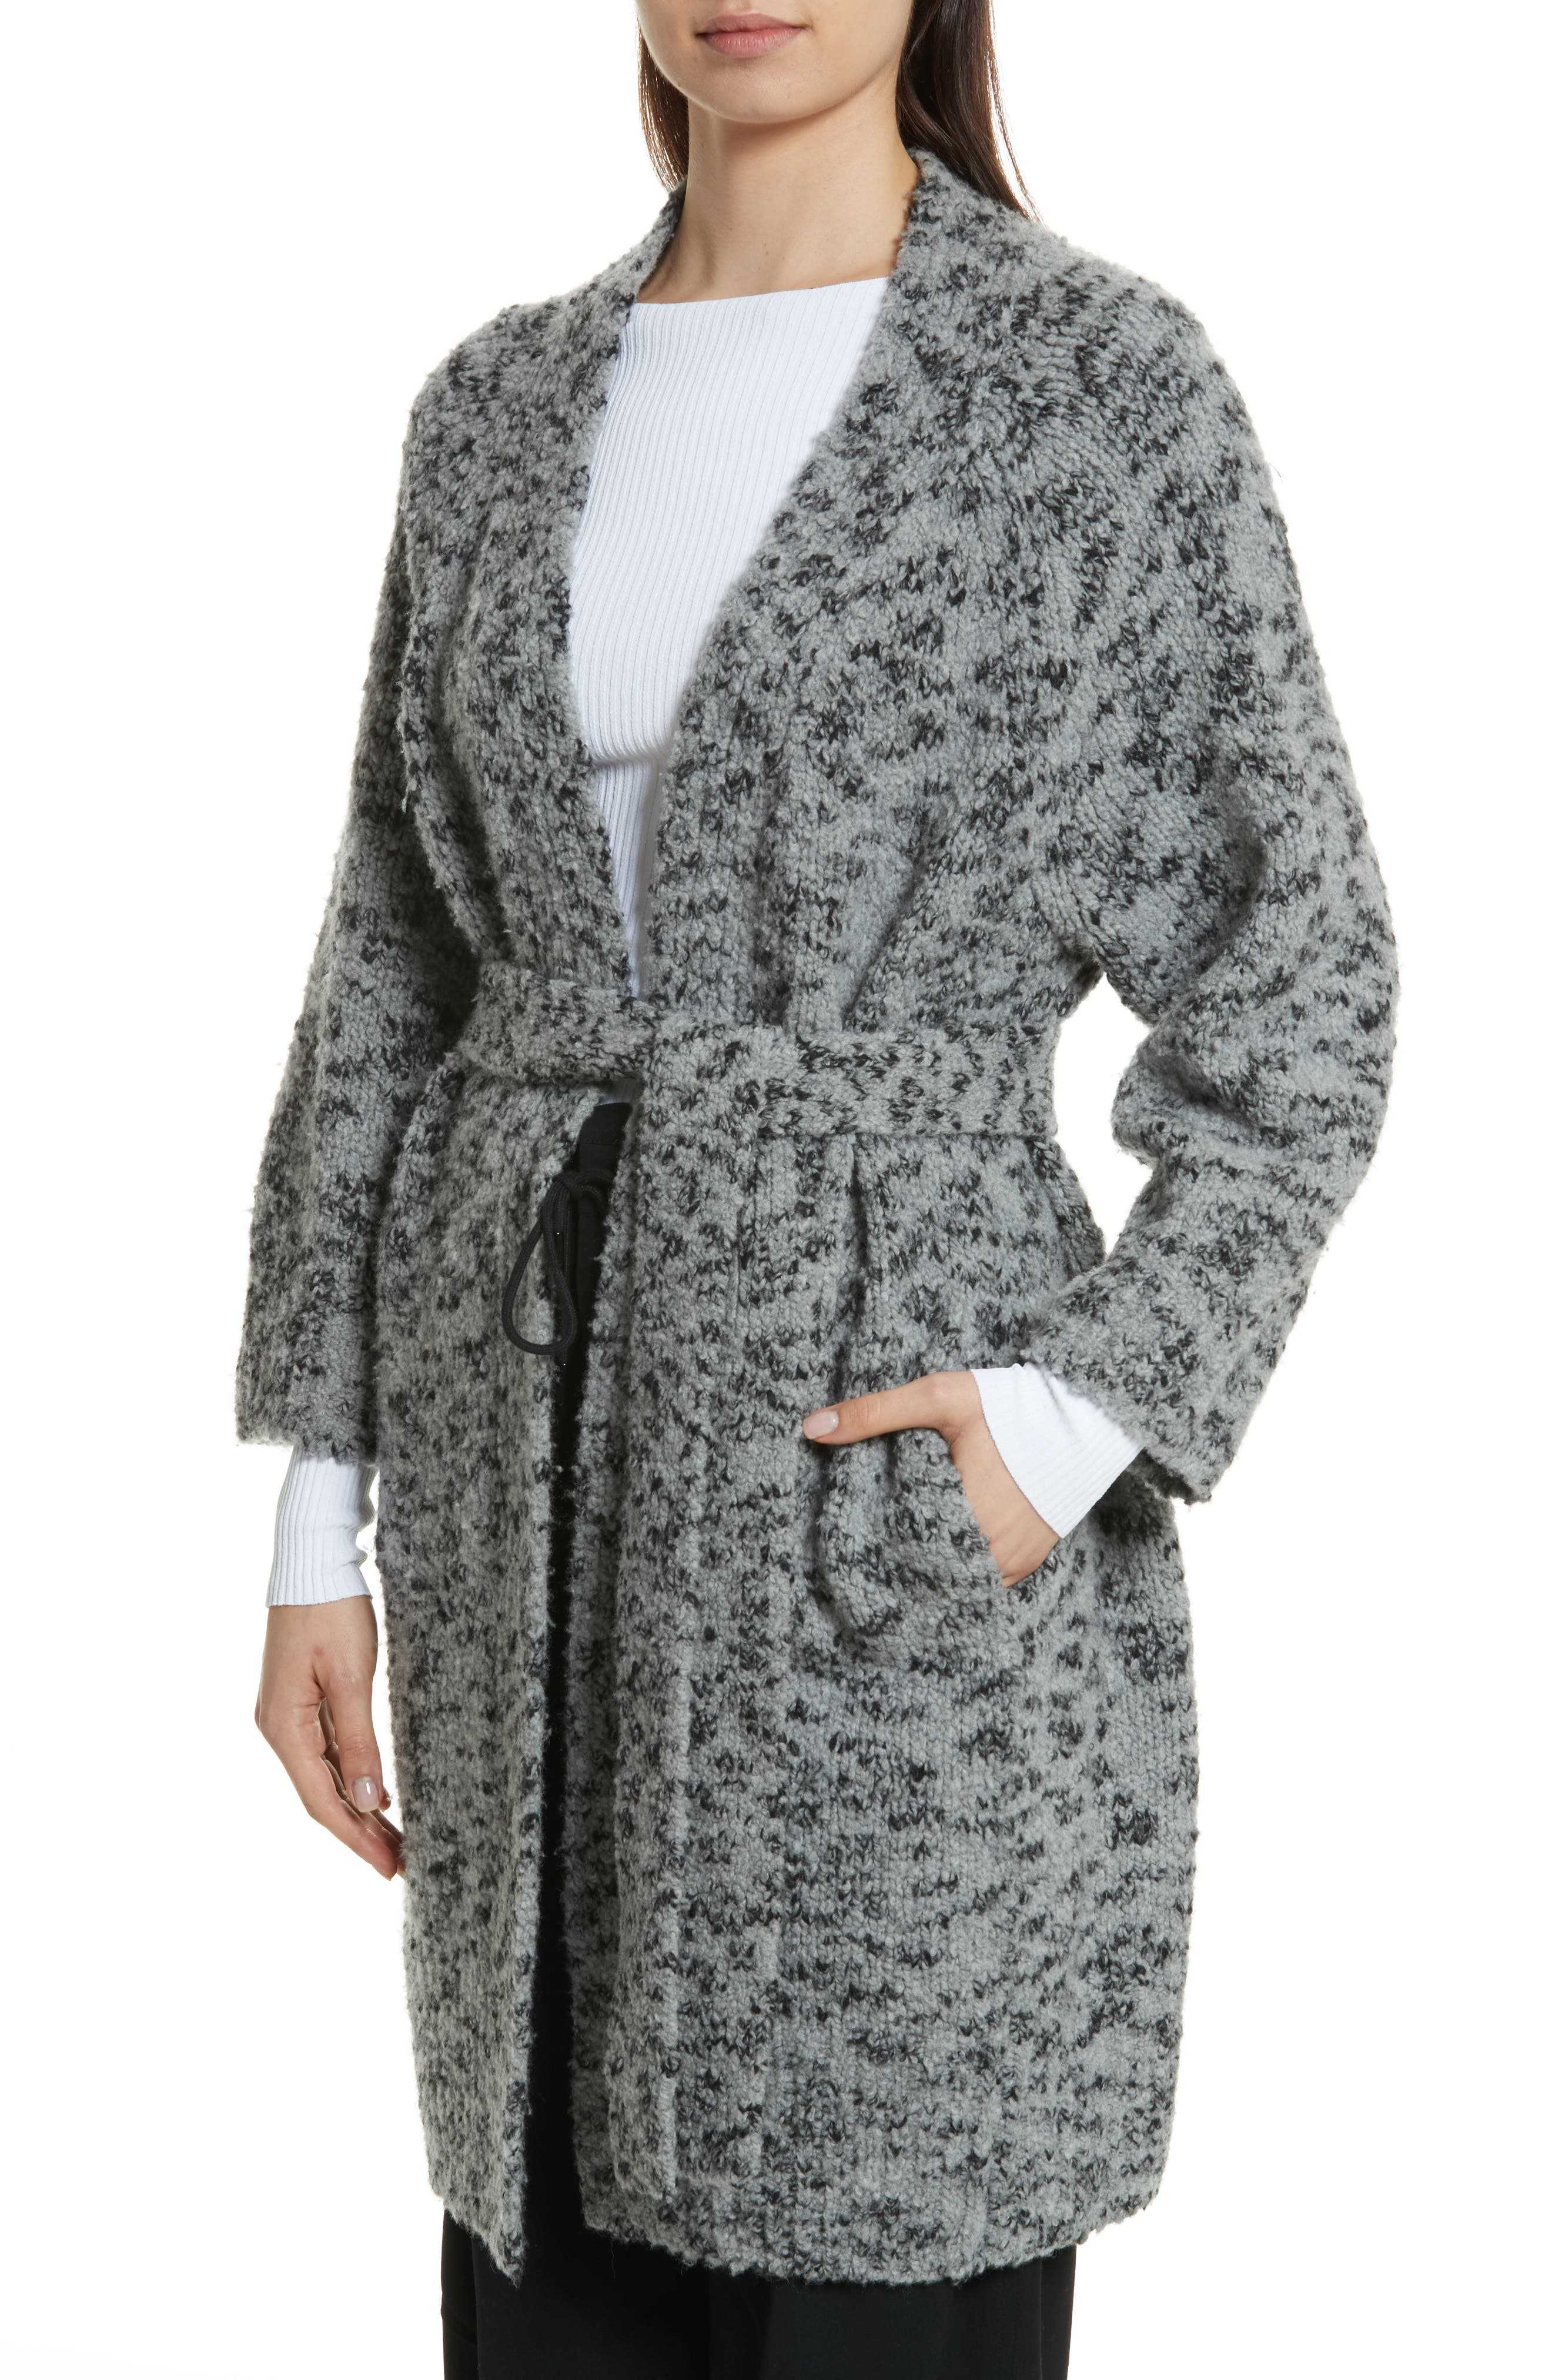 Textured Wool Blend Cardigan,                             Alternate thumbnail 4, color,                             Grey/ Black